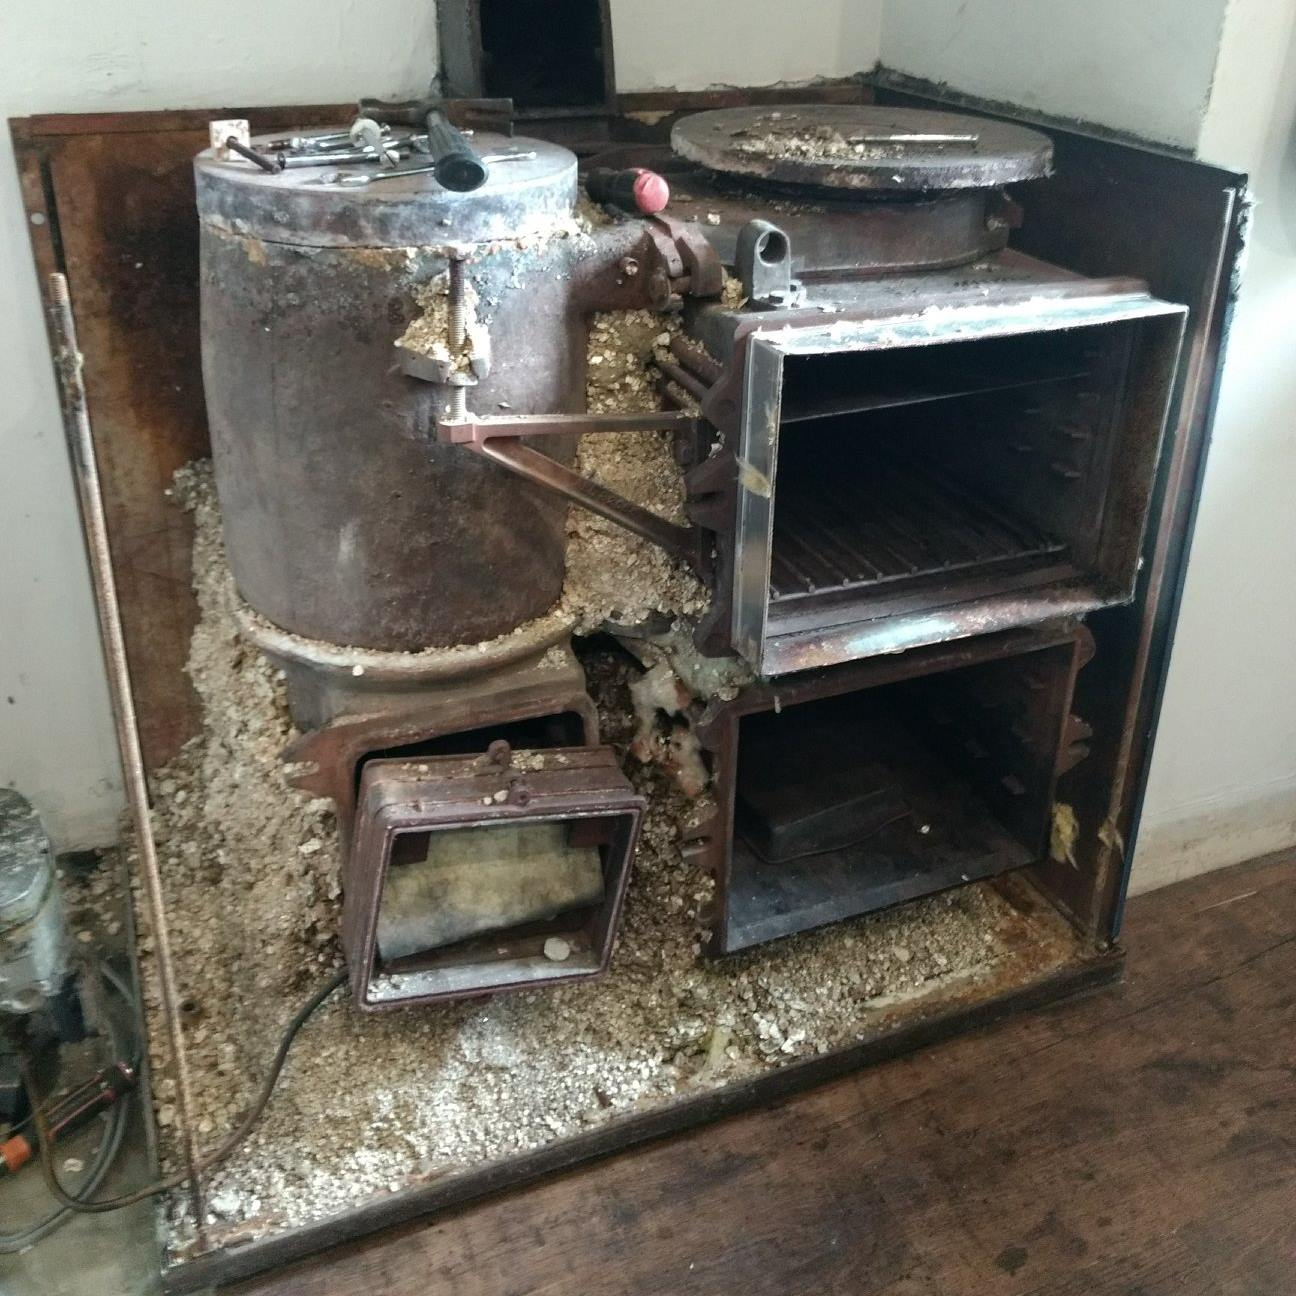 Aga range cooker with front removed during re-enamelling